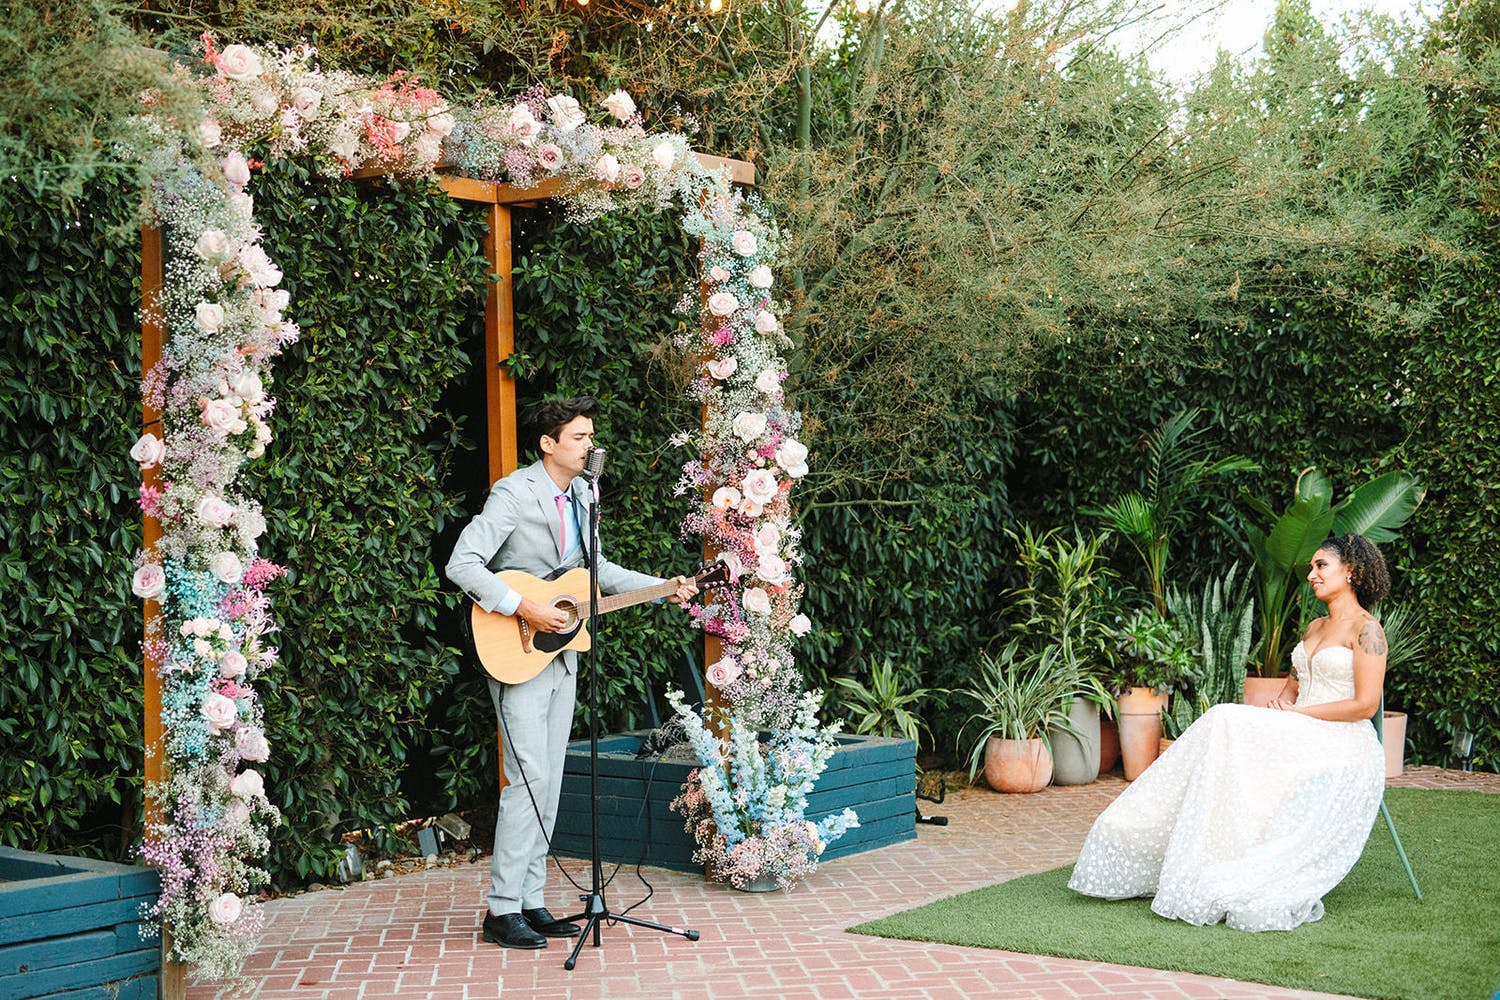 Beneath a whimsical floral arch, groom sings and play guitar for bride at micro wedding reception   PartySlate